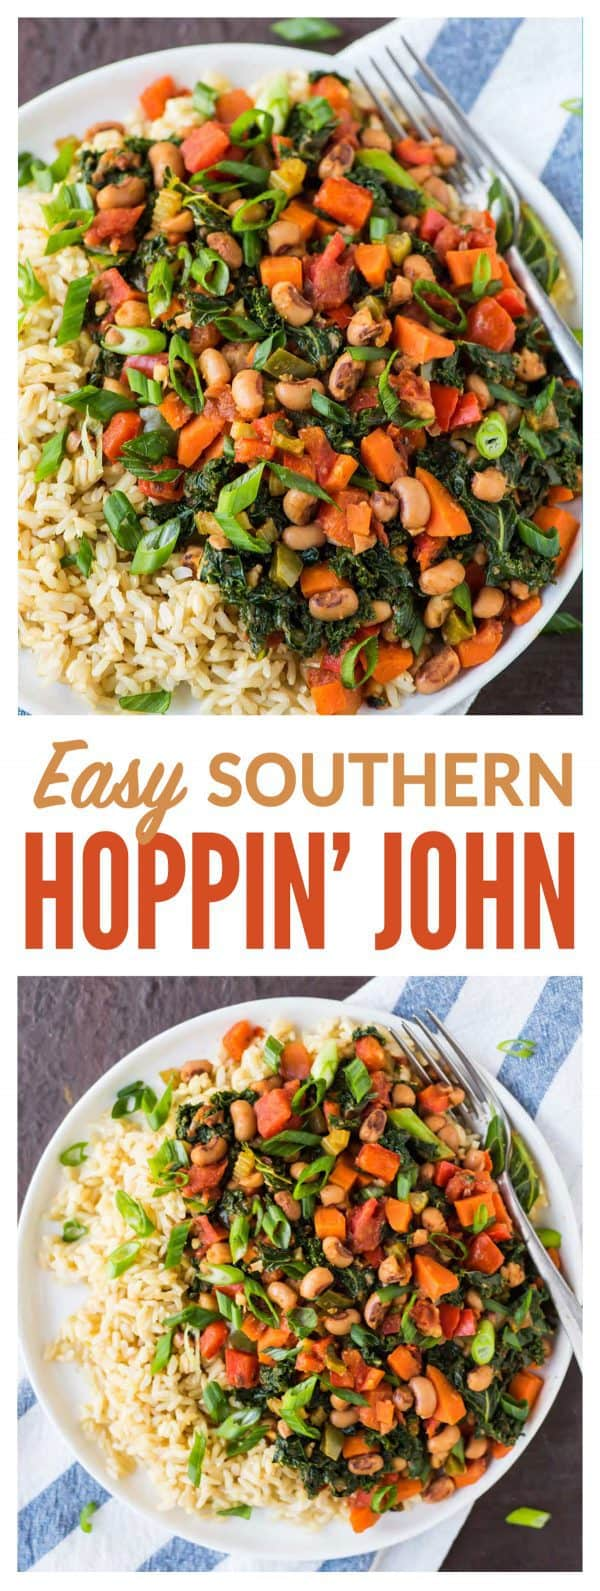 Easy Vegetarian Hoppin' John! A healthy twist on traditional Southern Hoppin' John made with with rice, black eyed peas, and greens. Great for New Years or anytime you need a fast dinner recipe! #healthy #hoppinjohn #newyears #easy #vegetarian